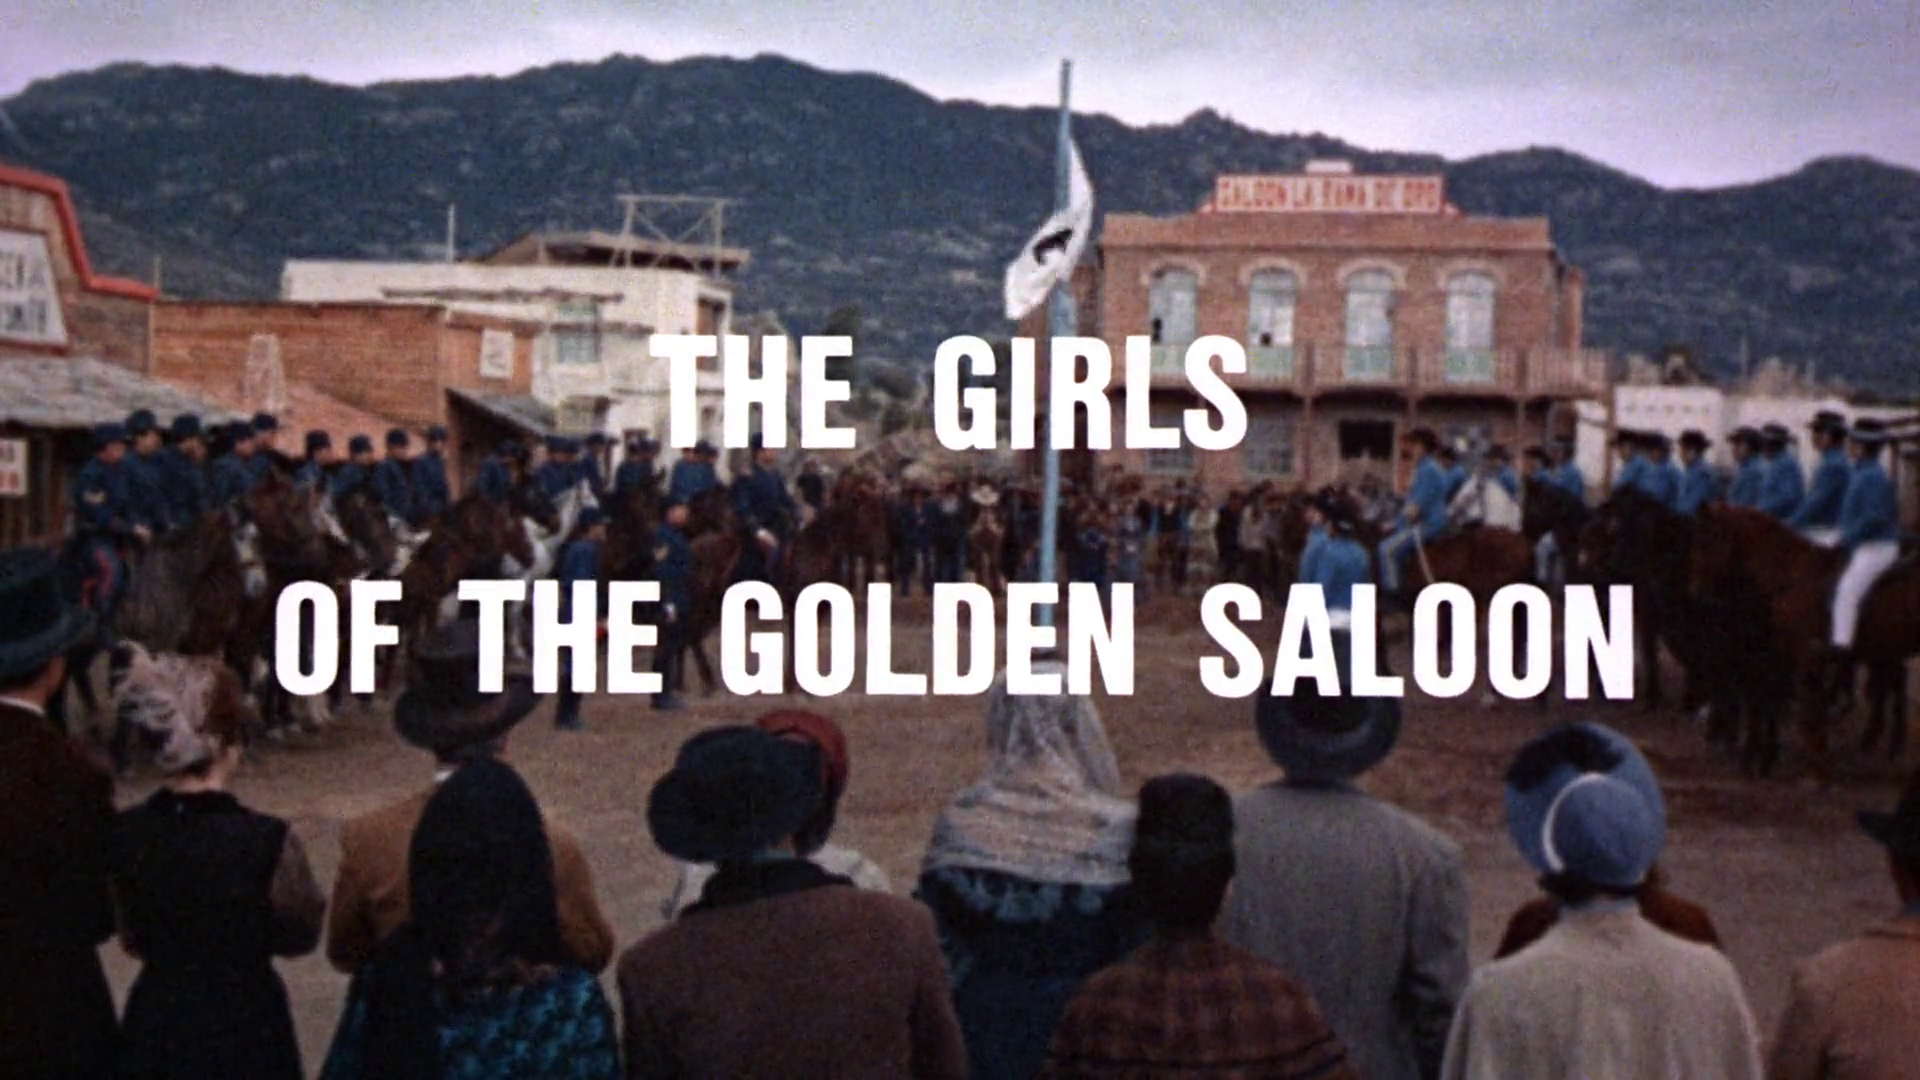 Girls of the Golden Saloon, The